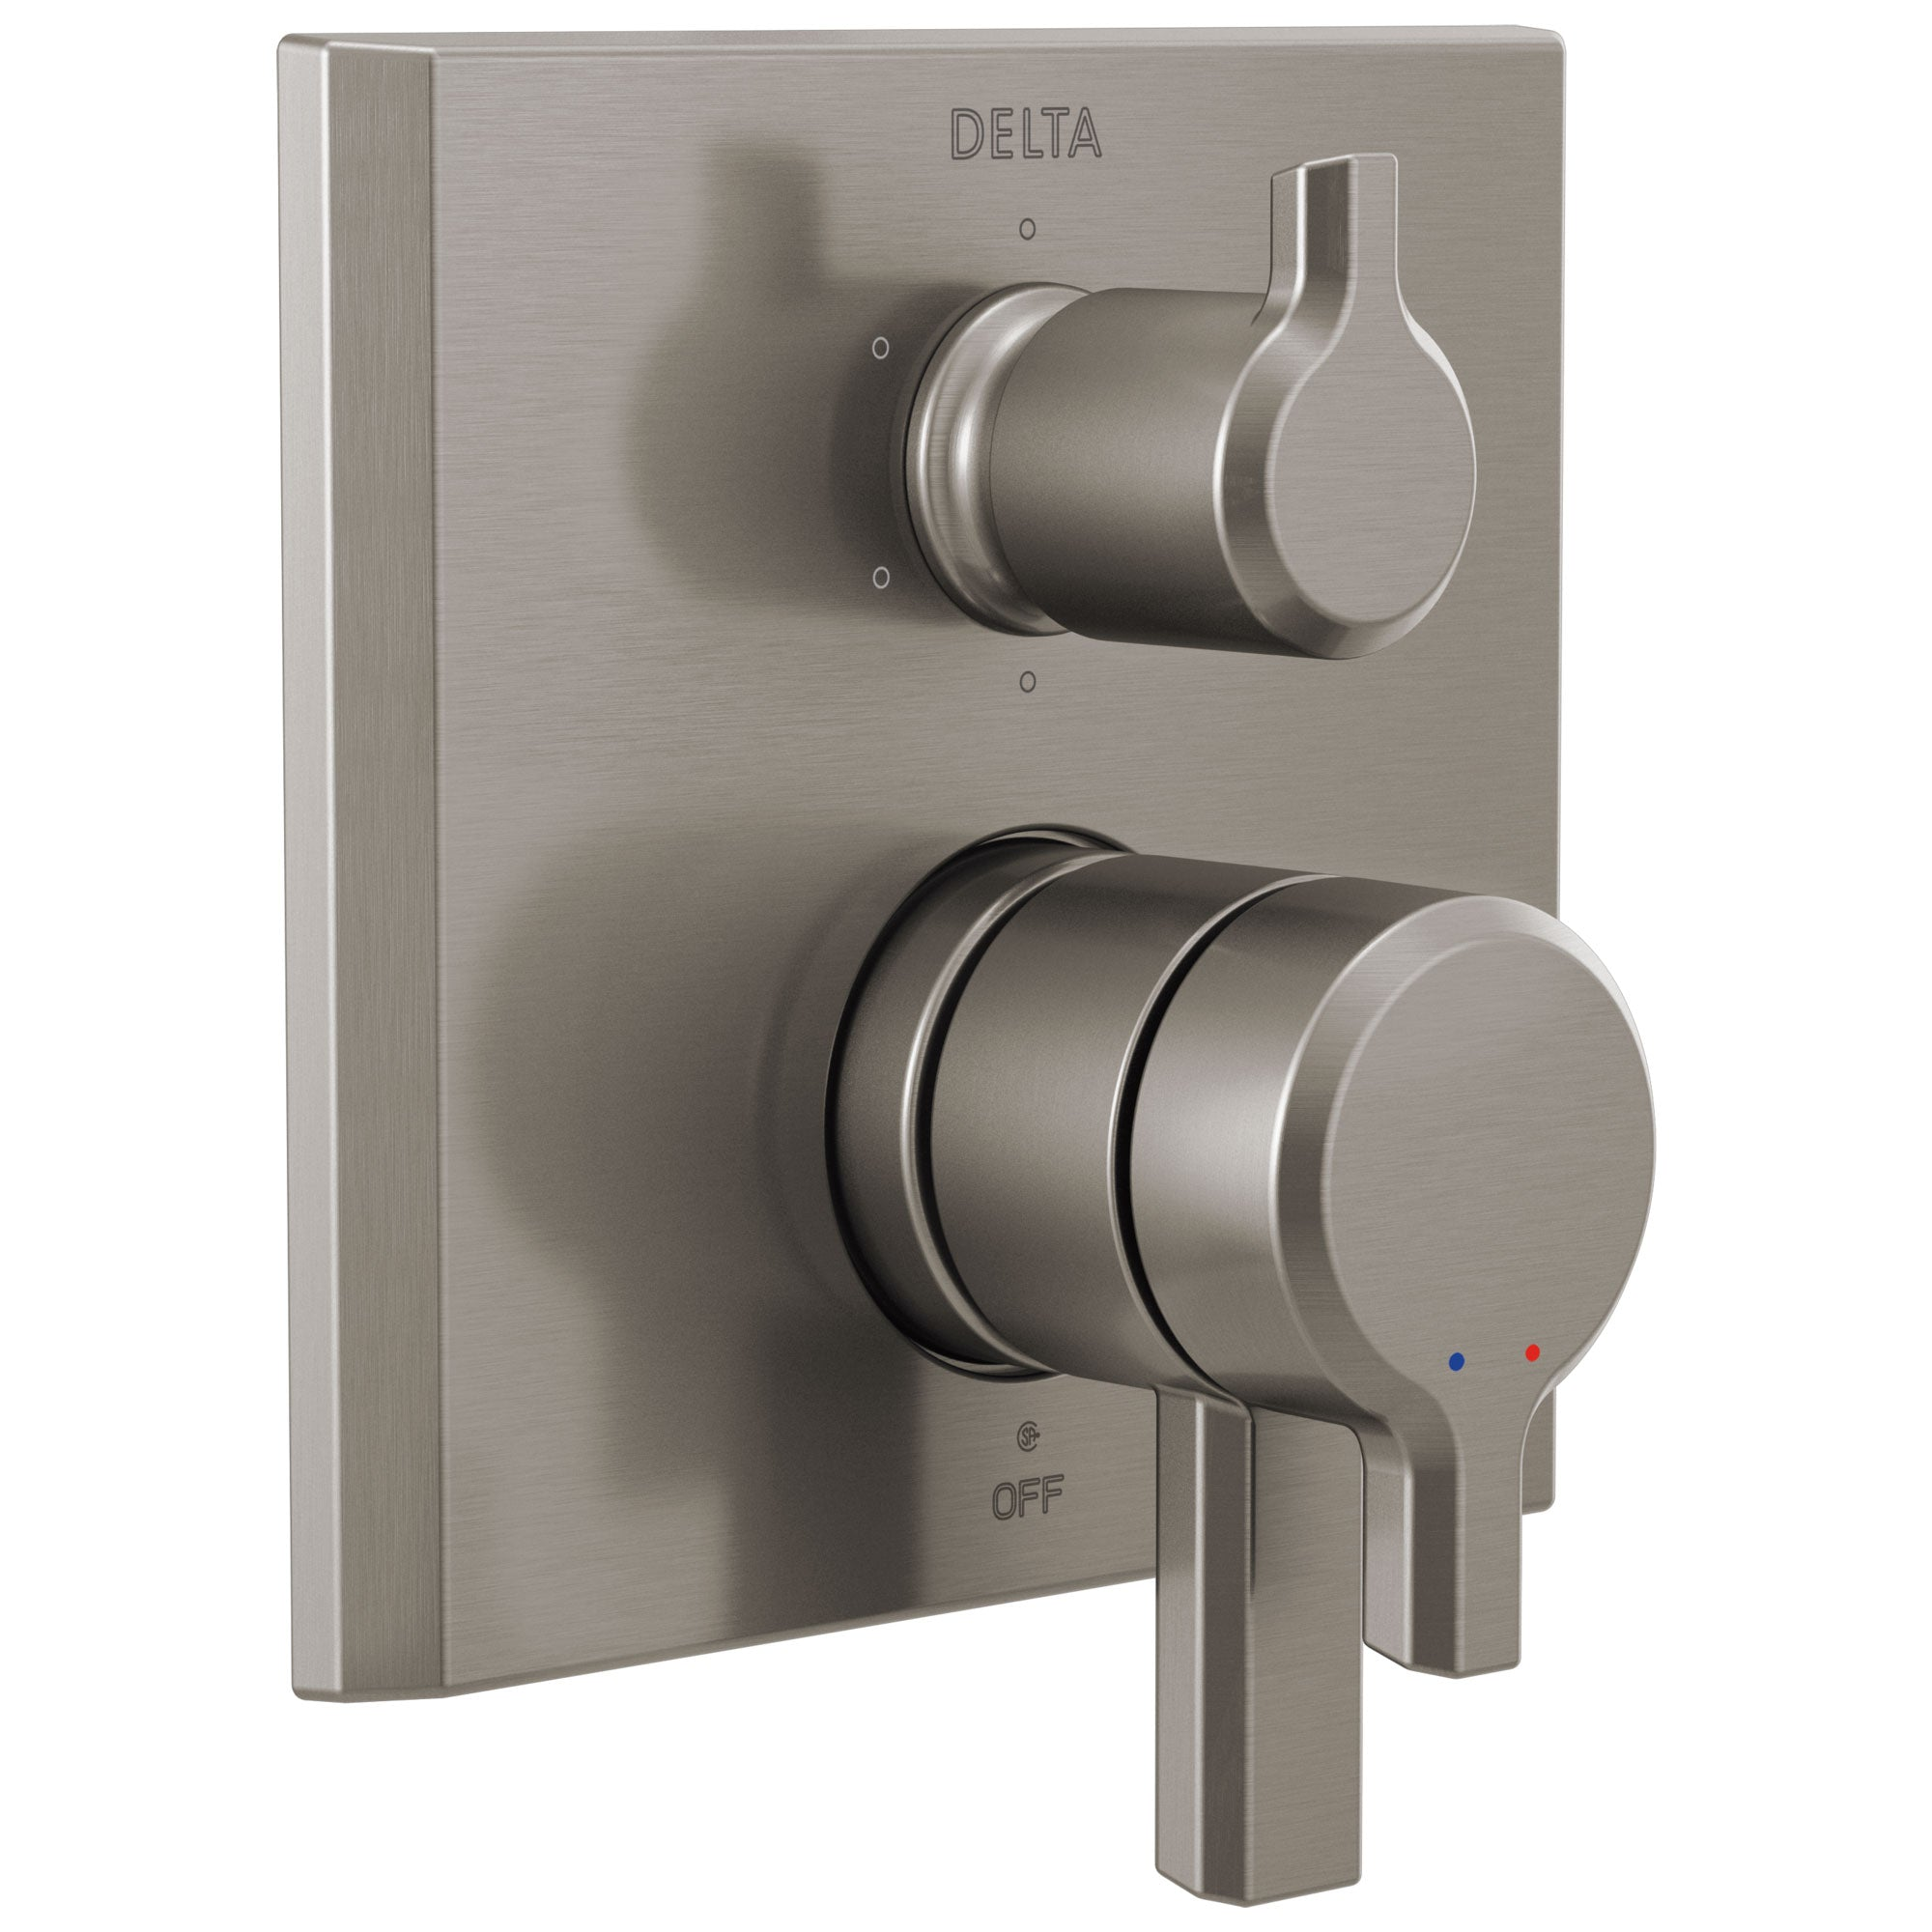 Delta Pivotal Stainless Steel Finish Monitor 17 Series Shower System Control with 6-Setting Diverter Includes Rough-in Valve and Handles D3112V